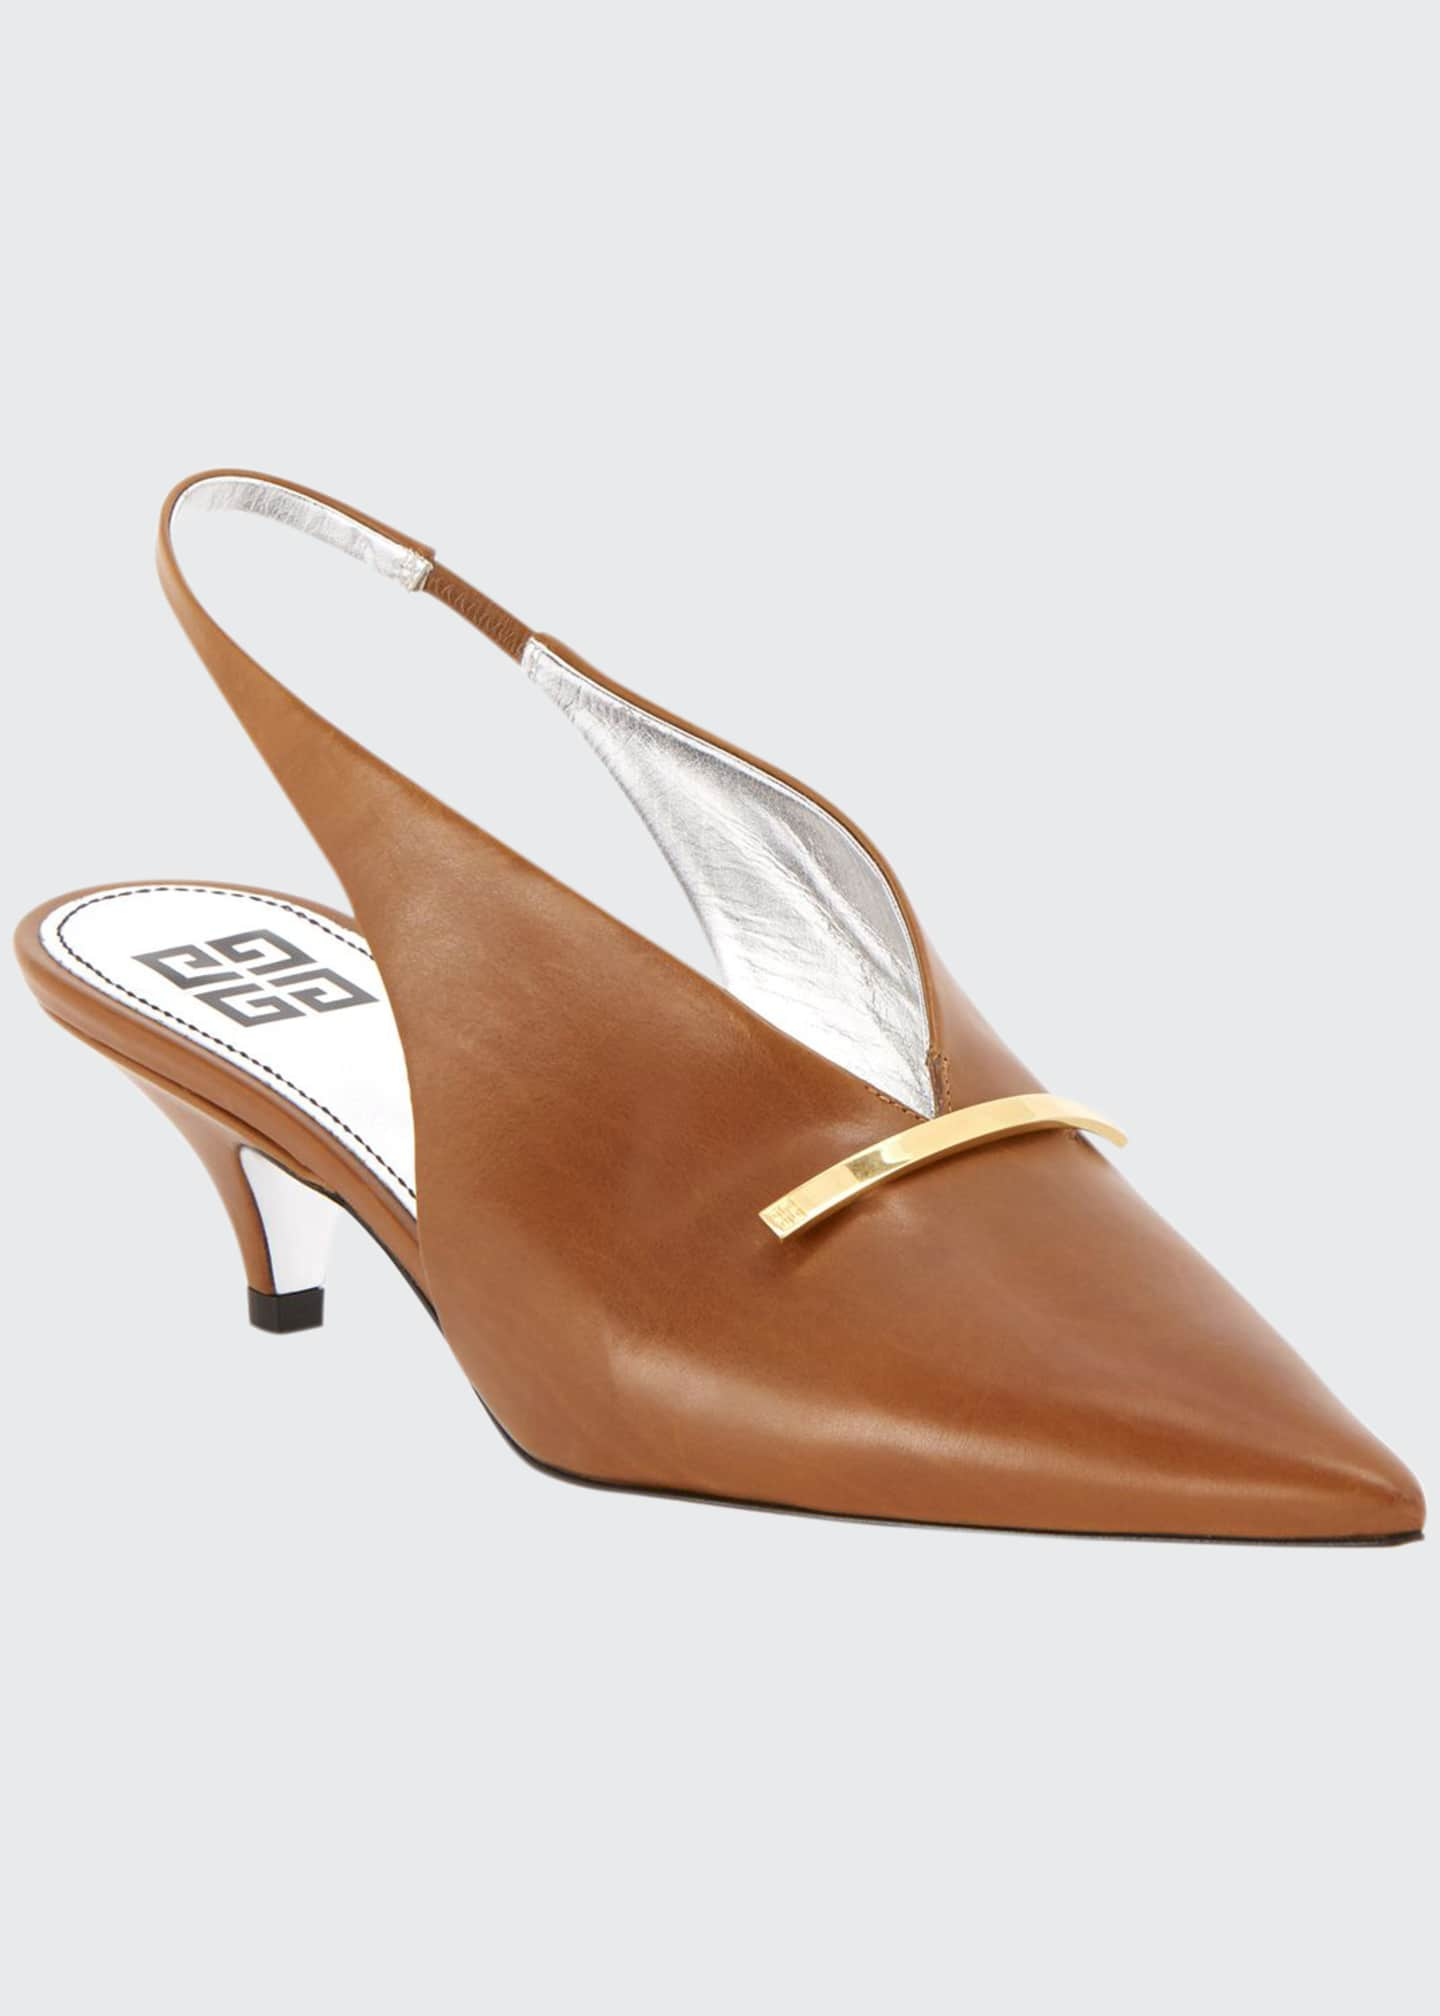 Givenchy Leather Kitten-Heel Slingback Pumps with Golden Bar